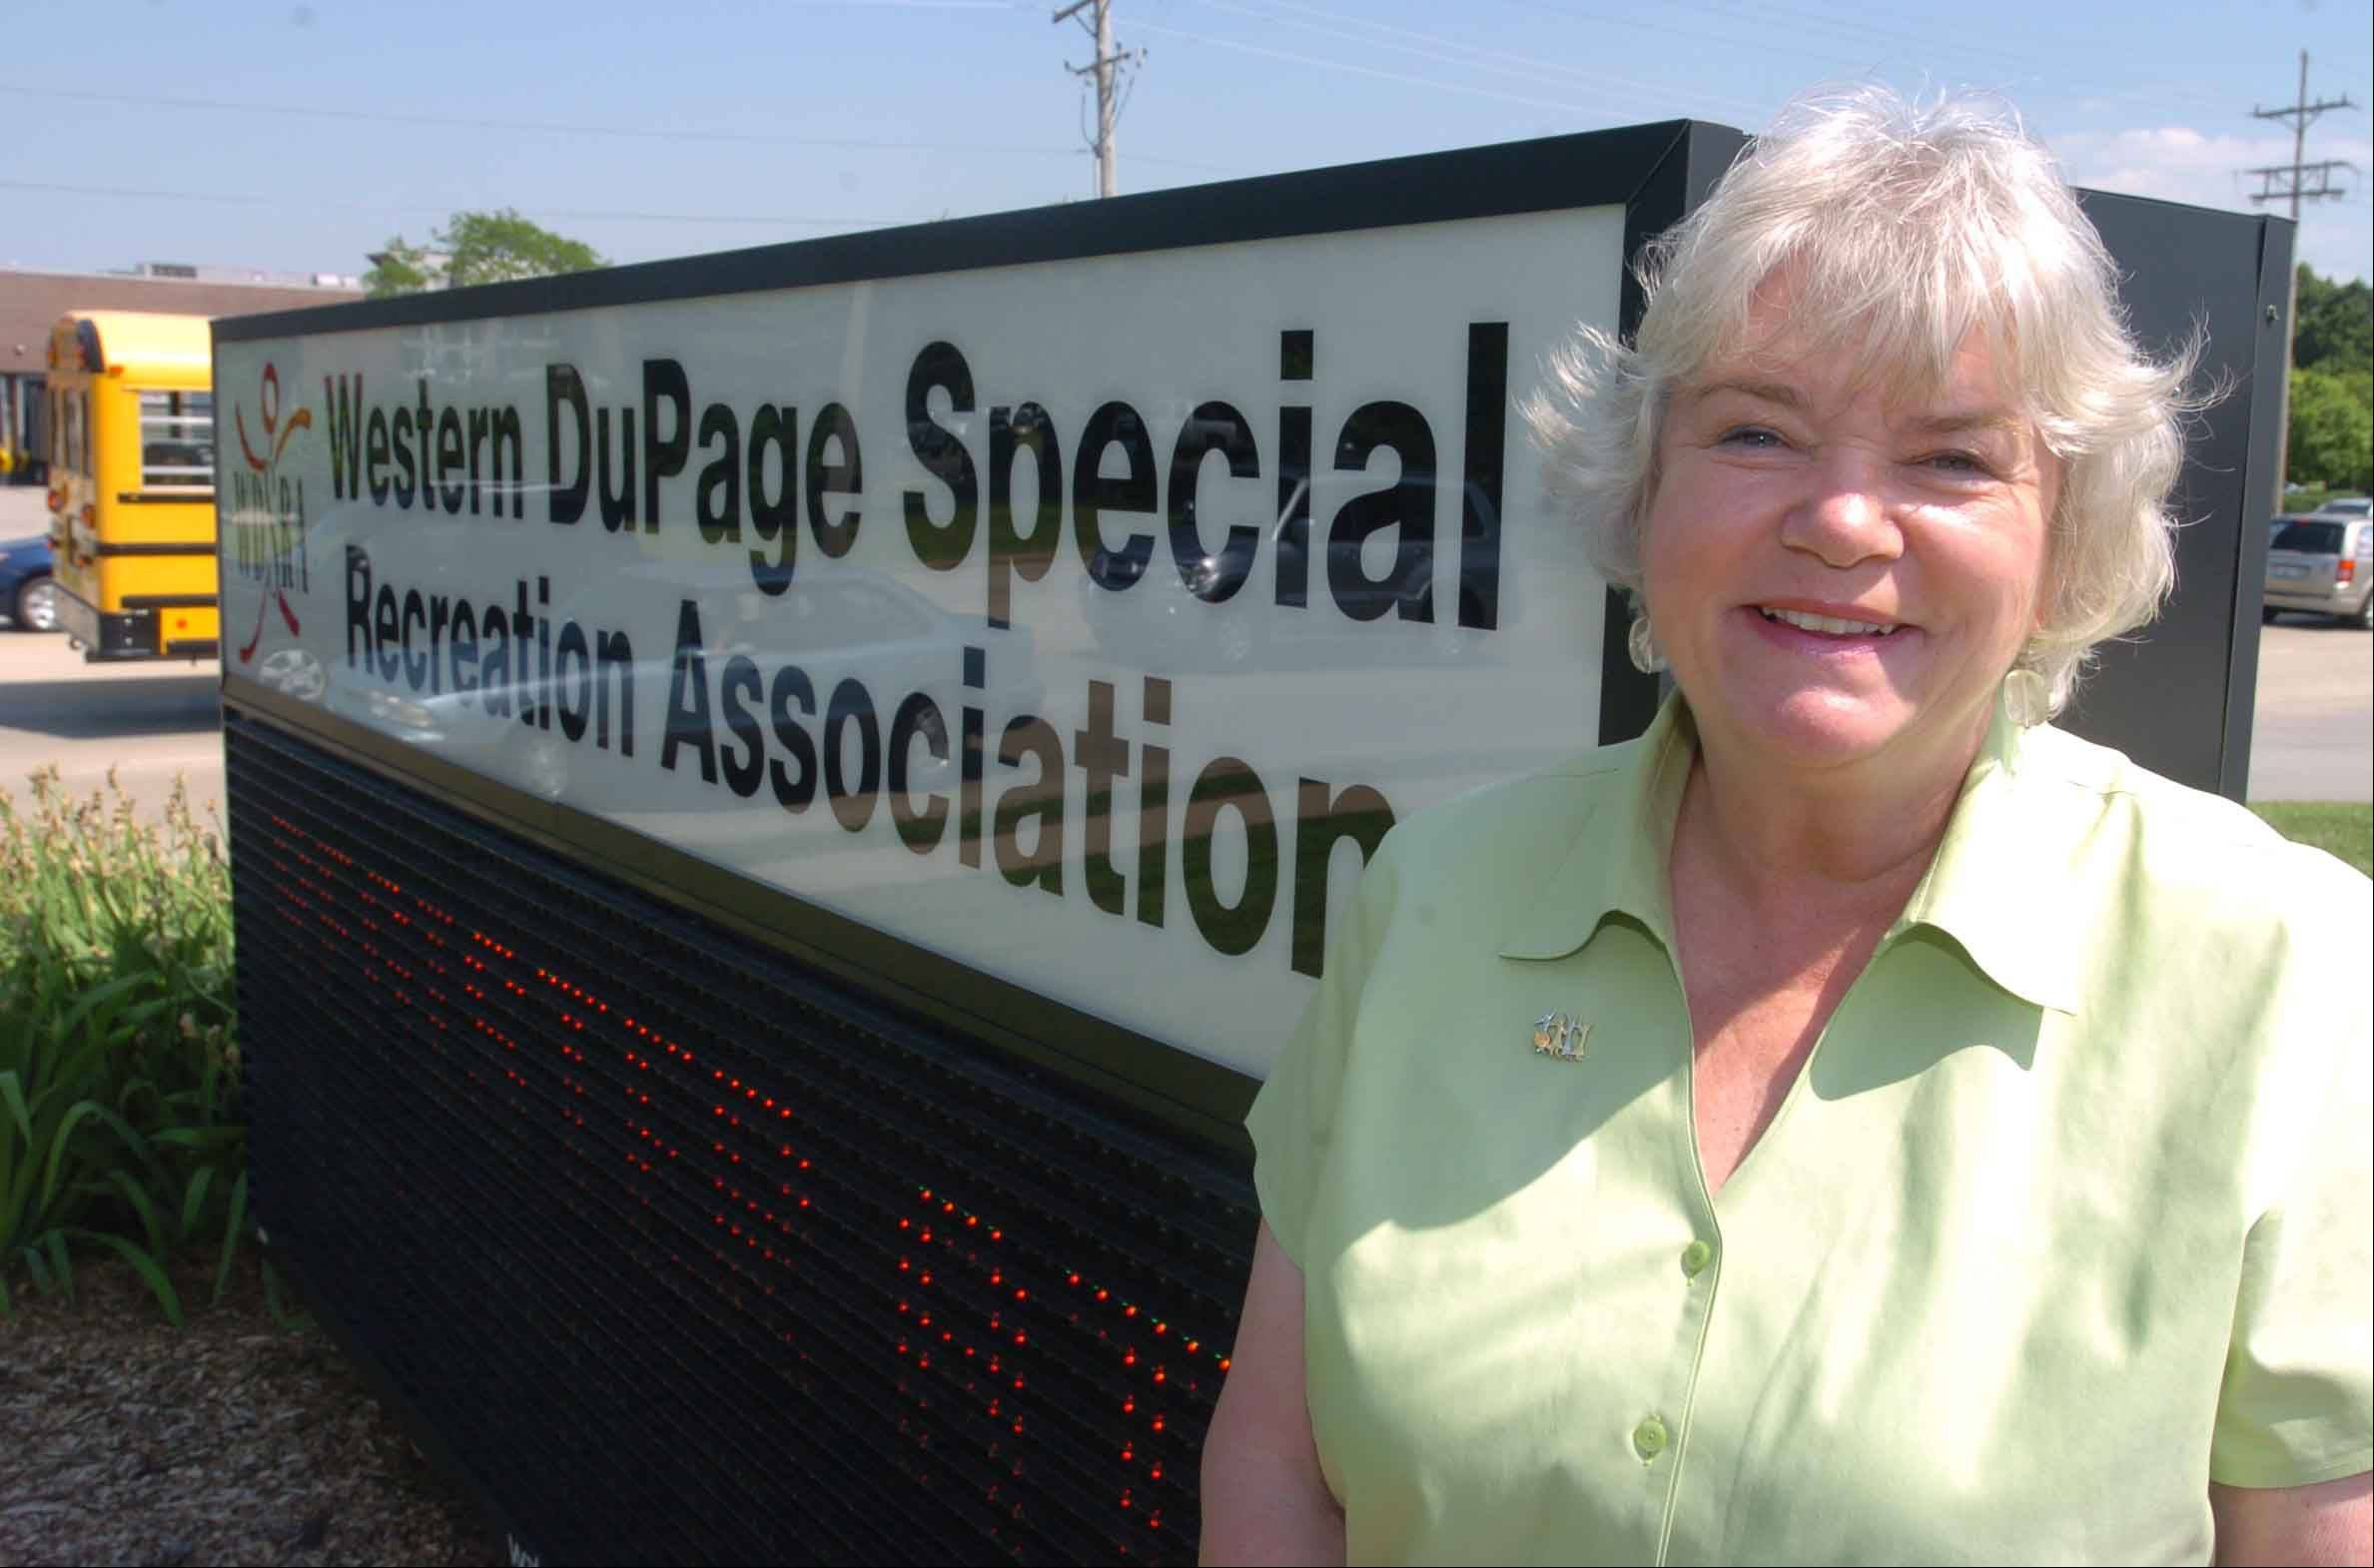 Jane Hodgkinson has spent the past 30 years working to help special needs residents and their families as executive director of the Western DuPage Special Recreation Association.